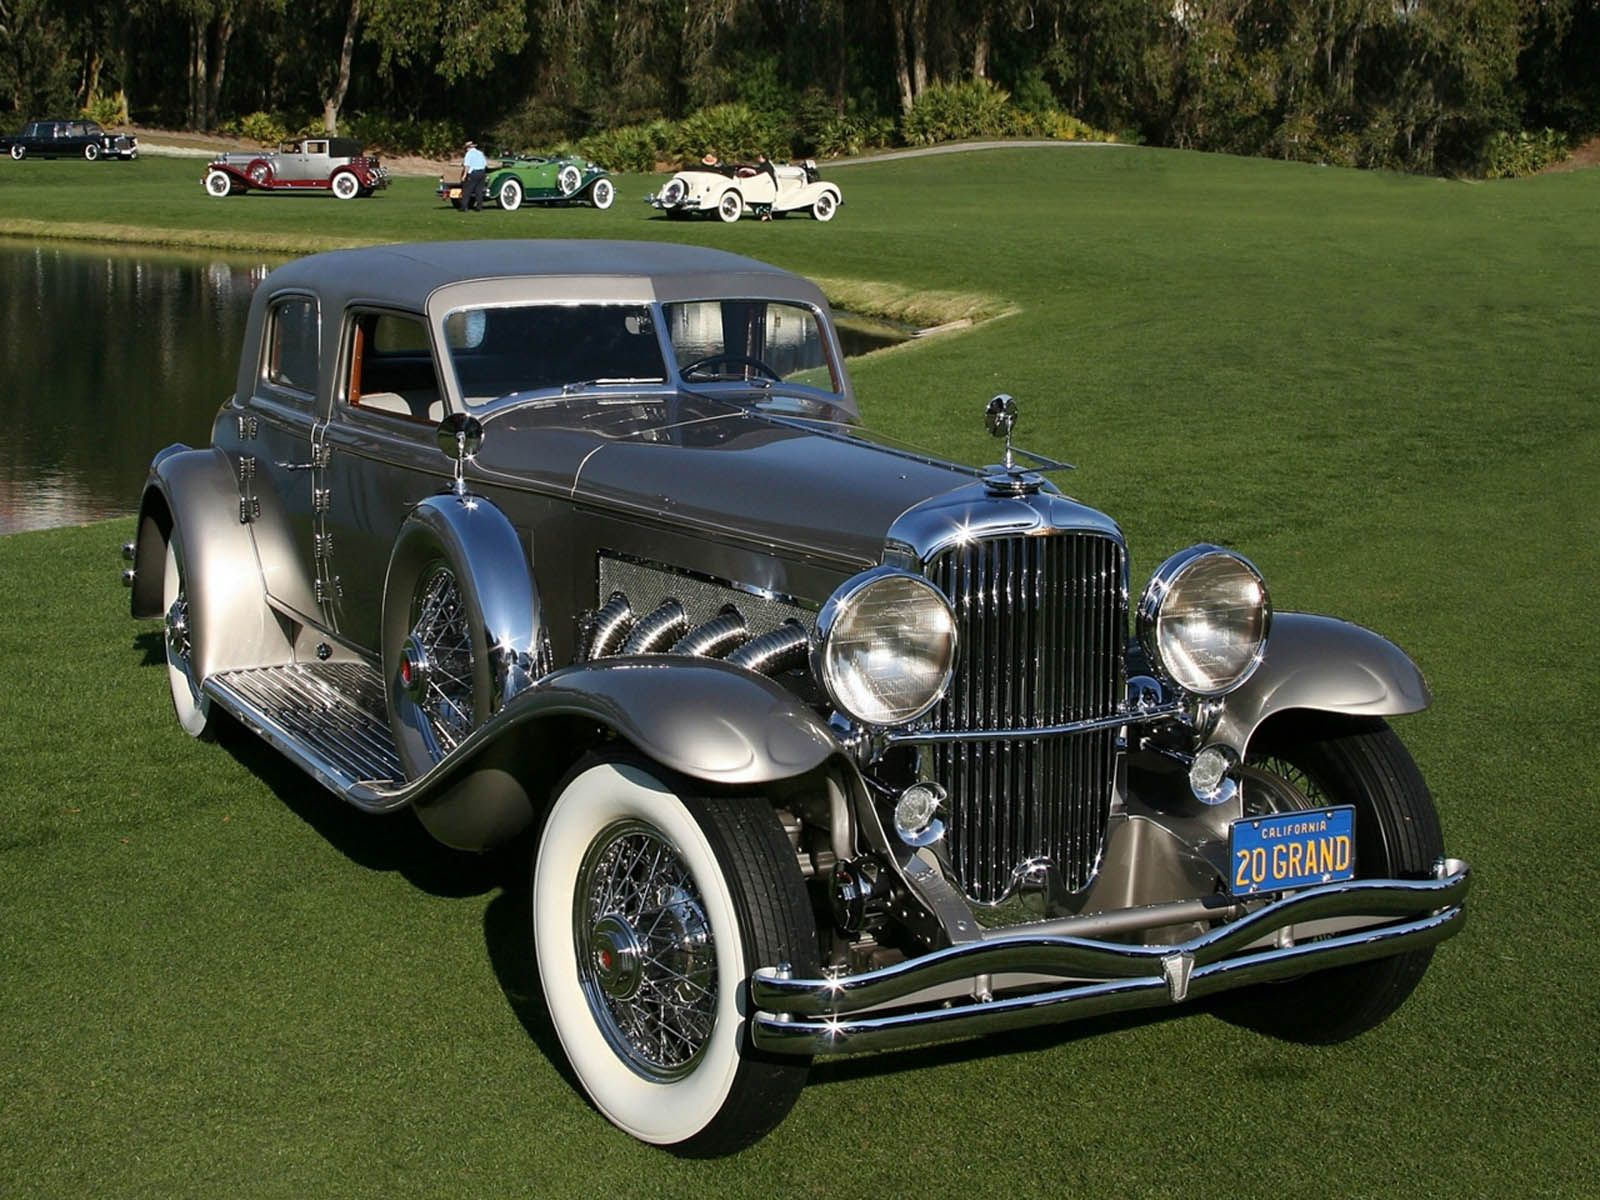 classic car images free | Tag: Classic Cars Wallpapers, Backgrounds ...